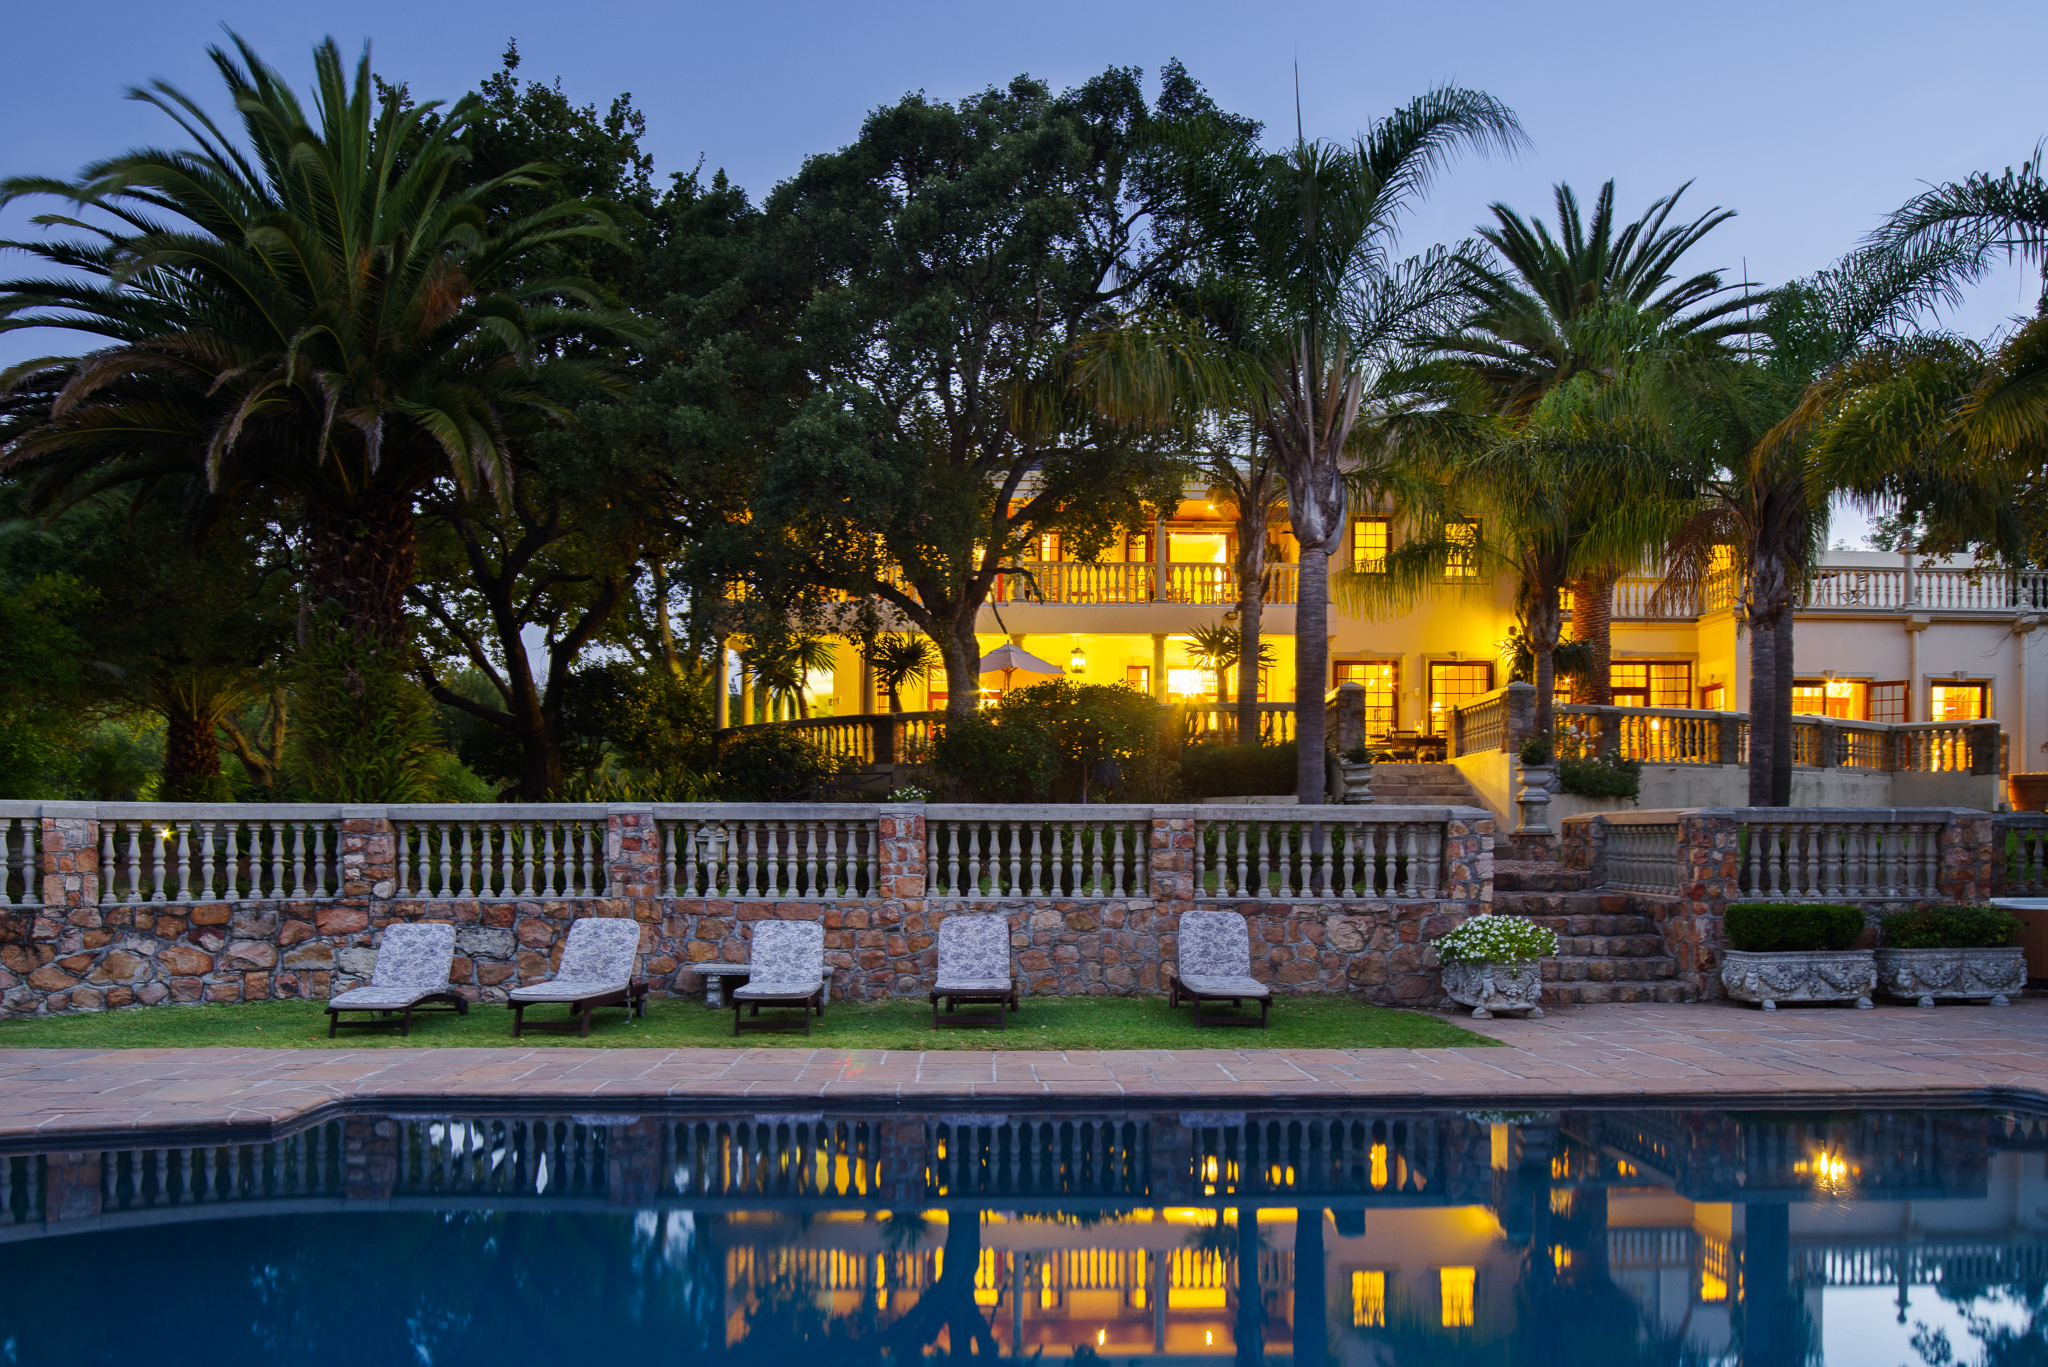 IBIS-luxury-guesthouse-constantia-cape-town---4